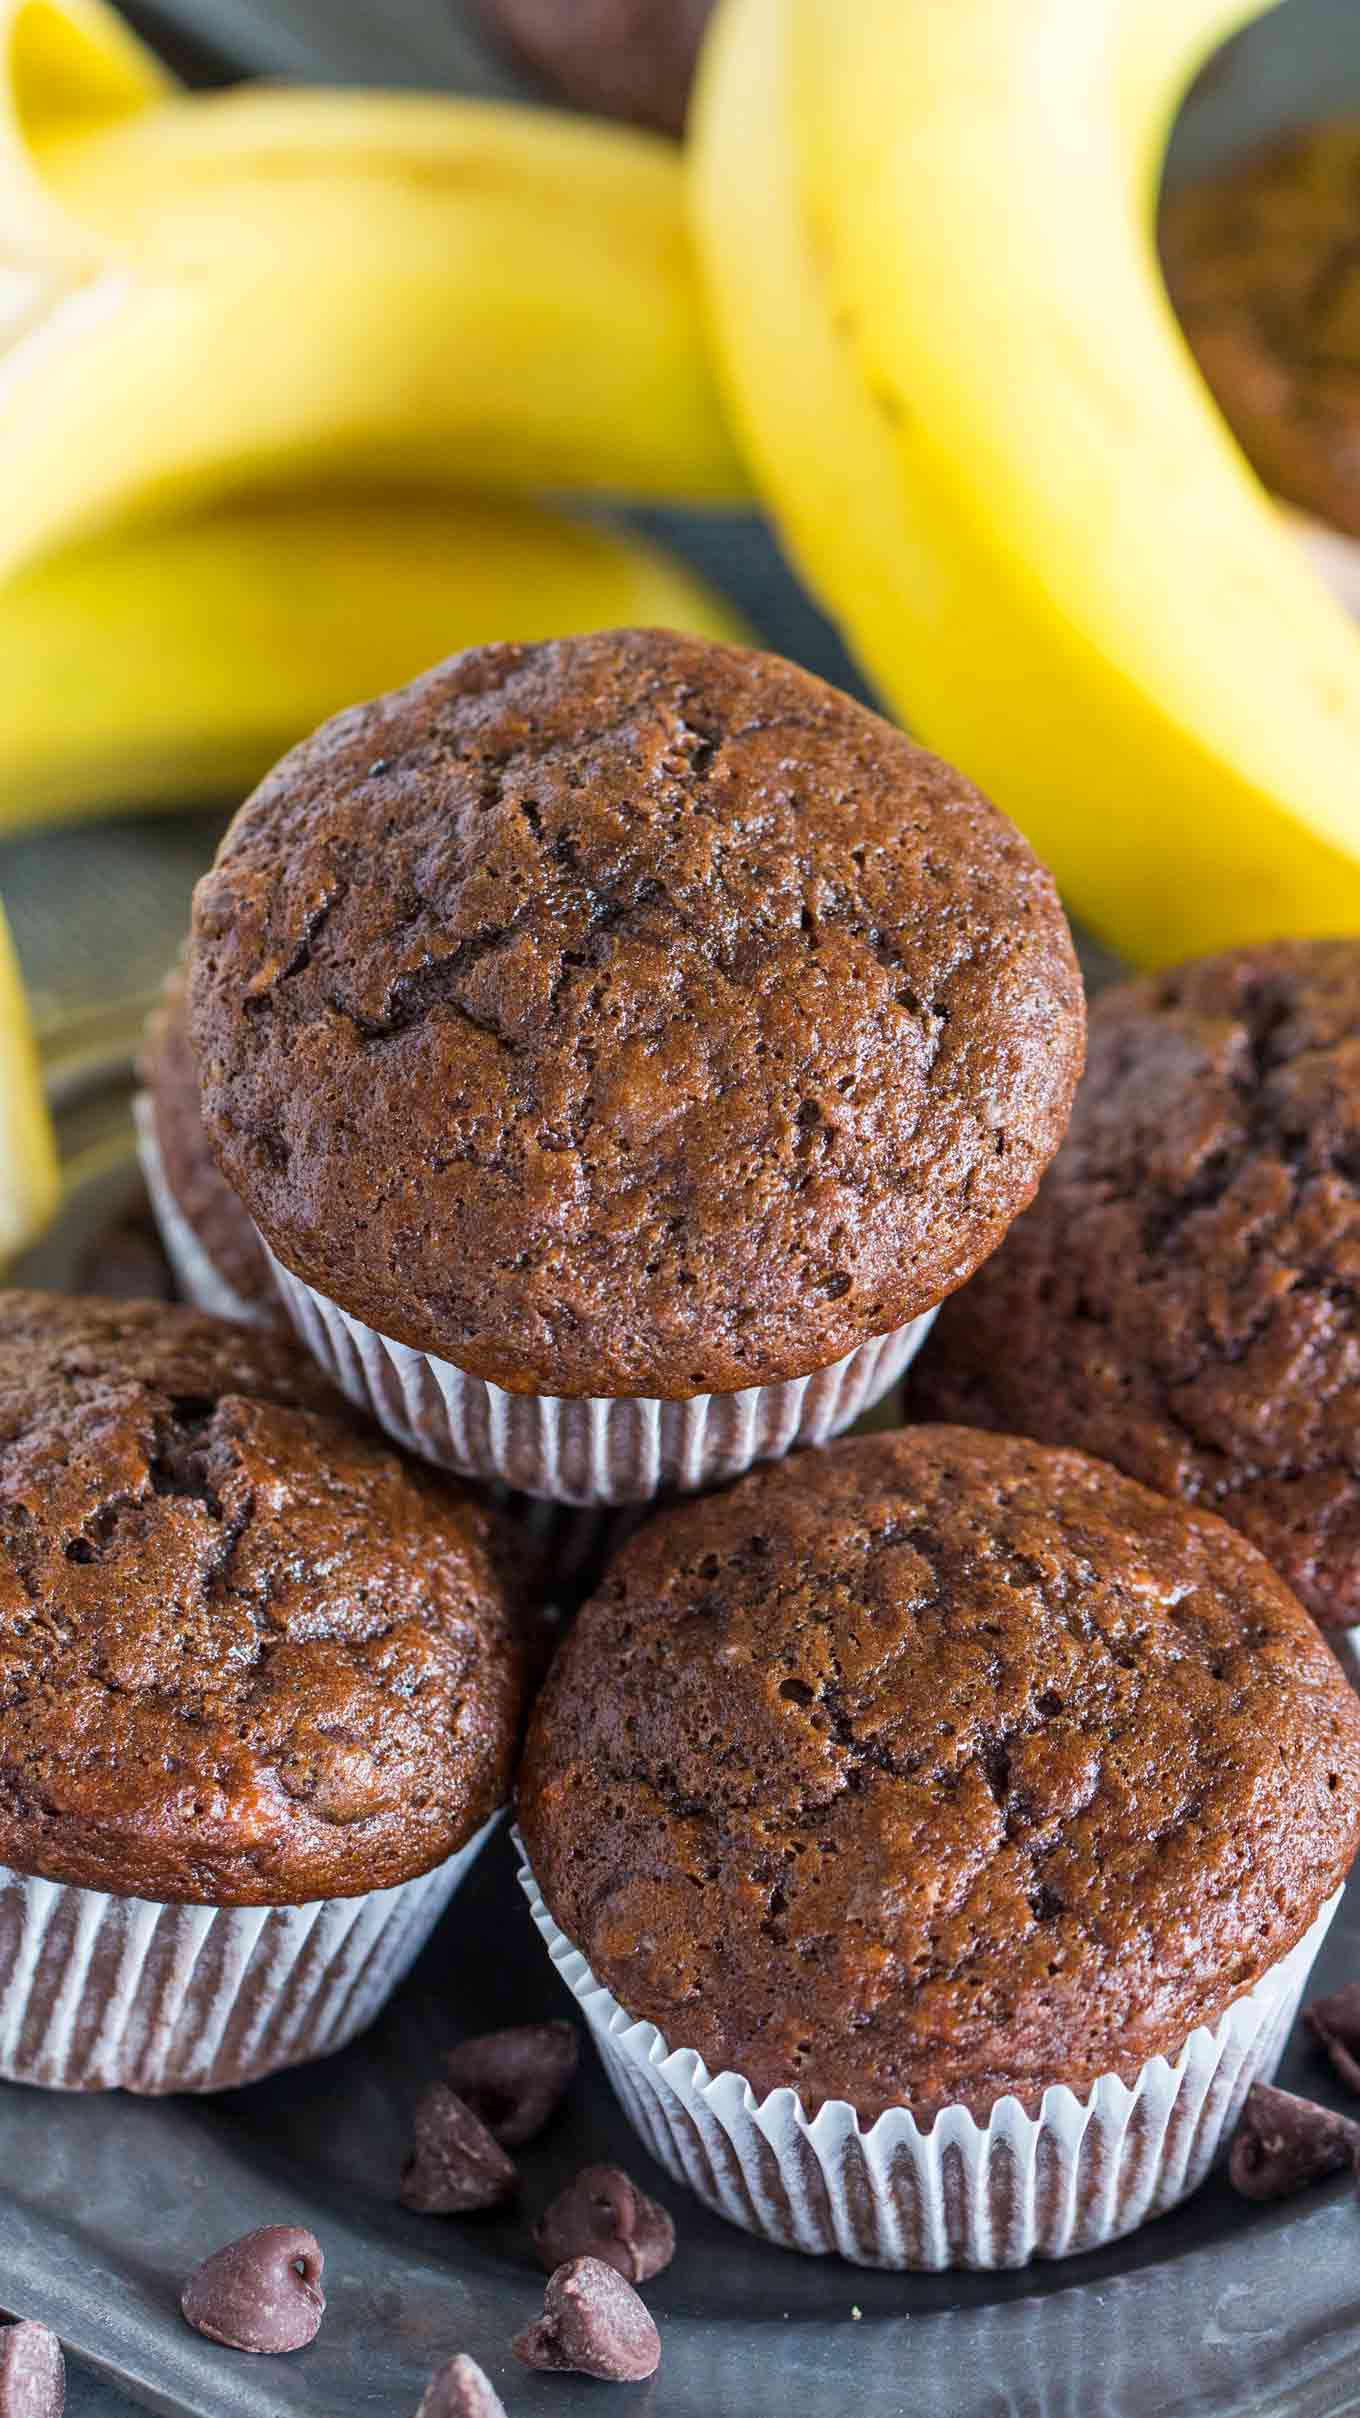 Best Ripe Banana Recipes Chocolate Banana Muffins